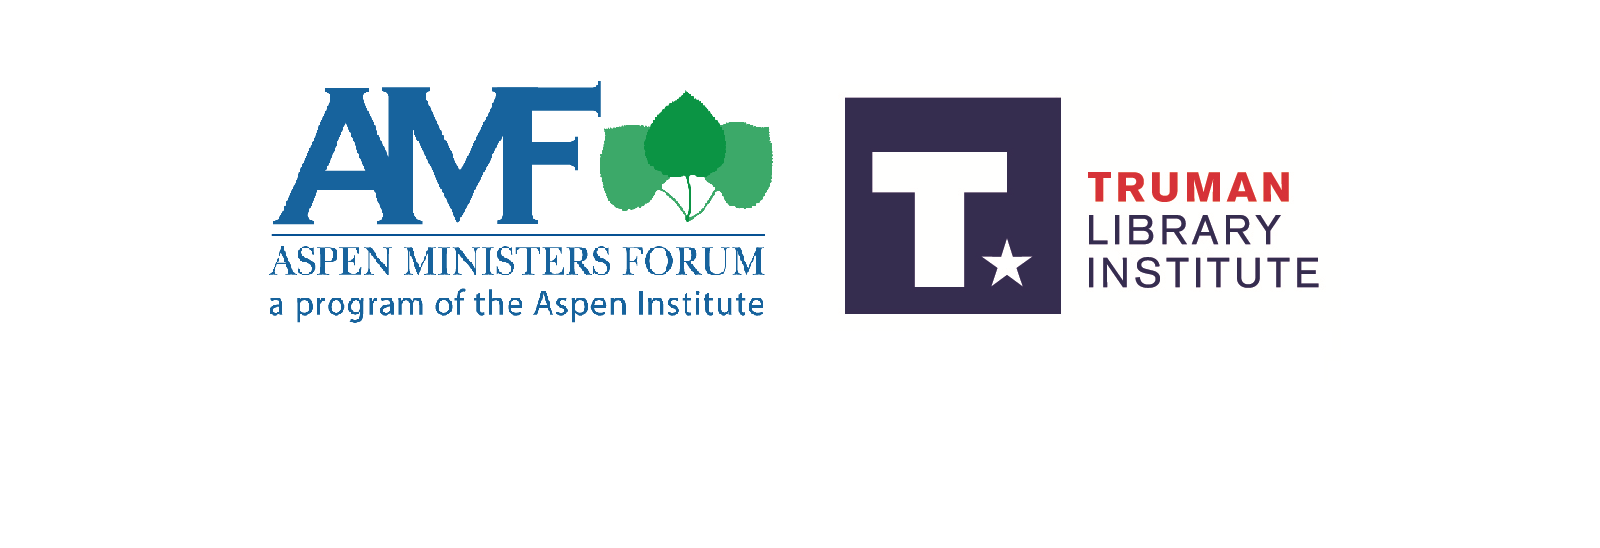 Aspen Ministers Forum - May 2019